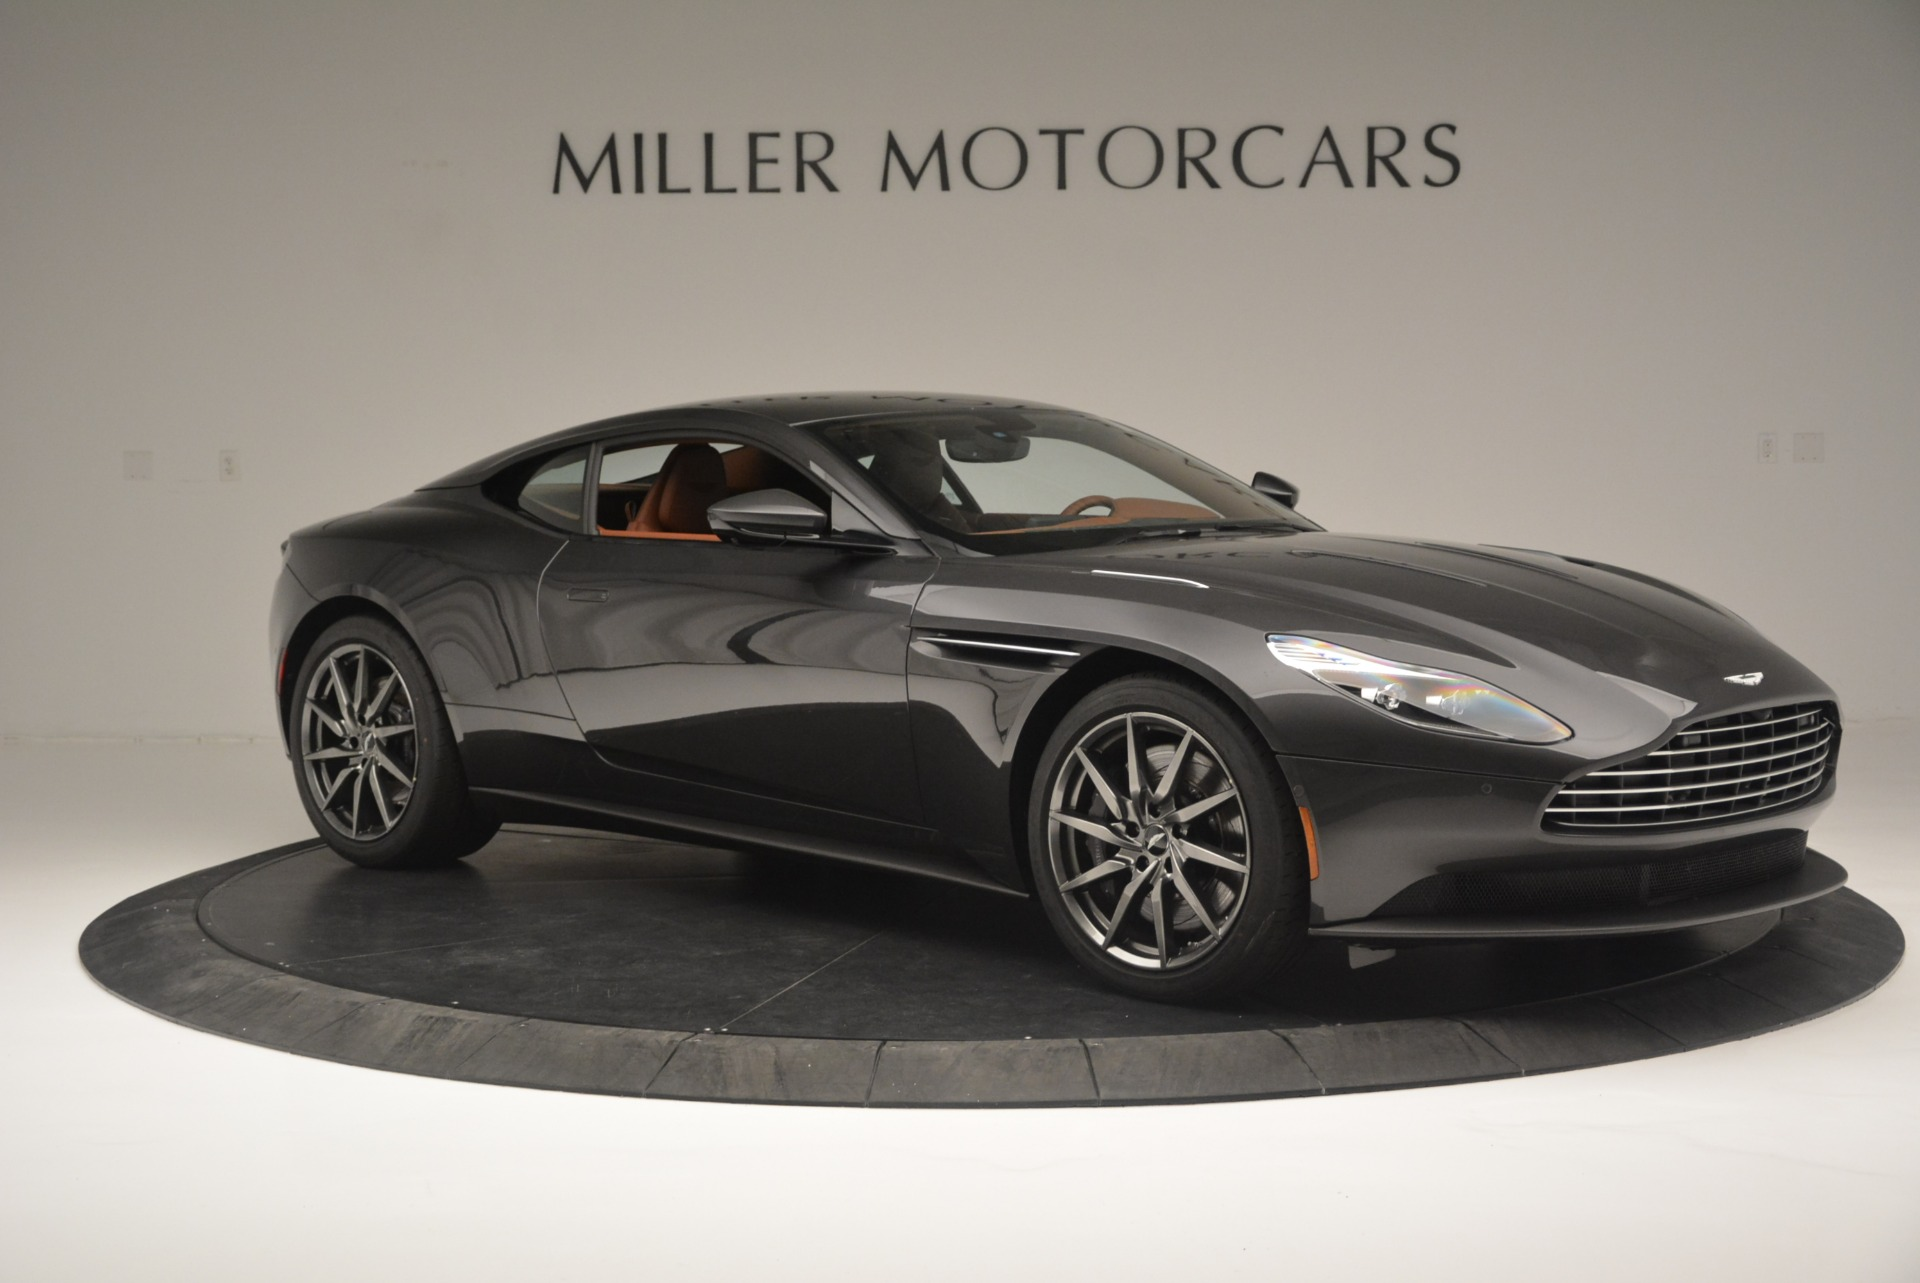 New 2018 Aston Martin DB11 V12 Coupe For Sale In Westport, CT 2226_p10